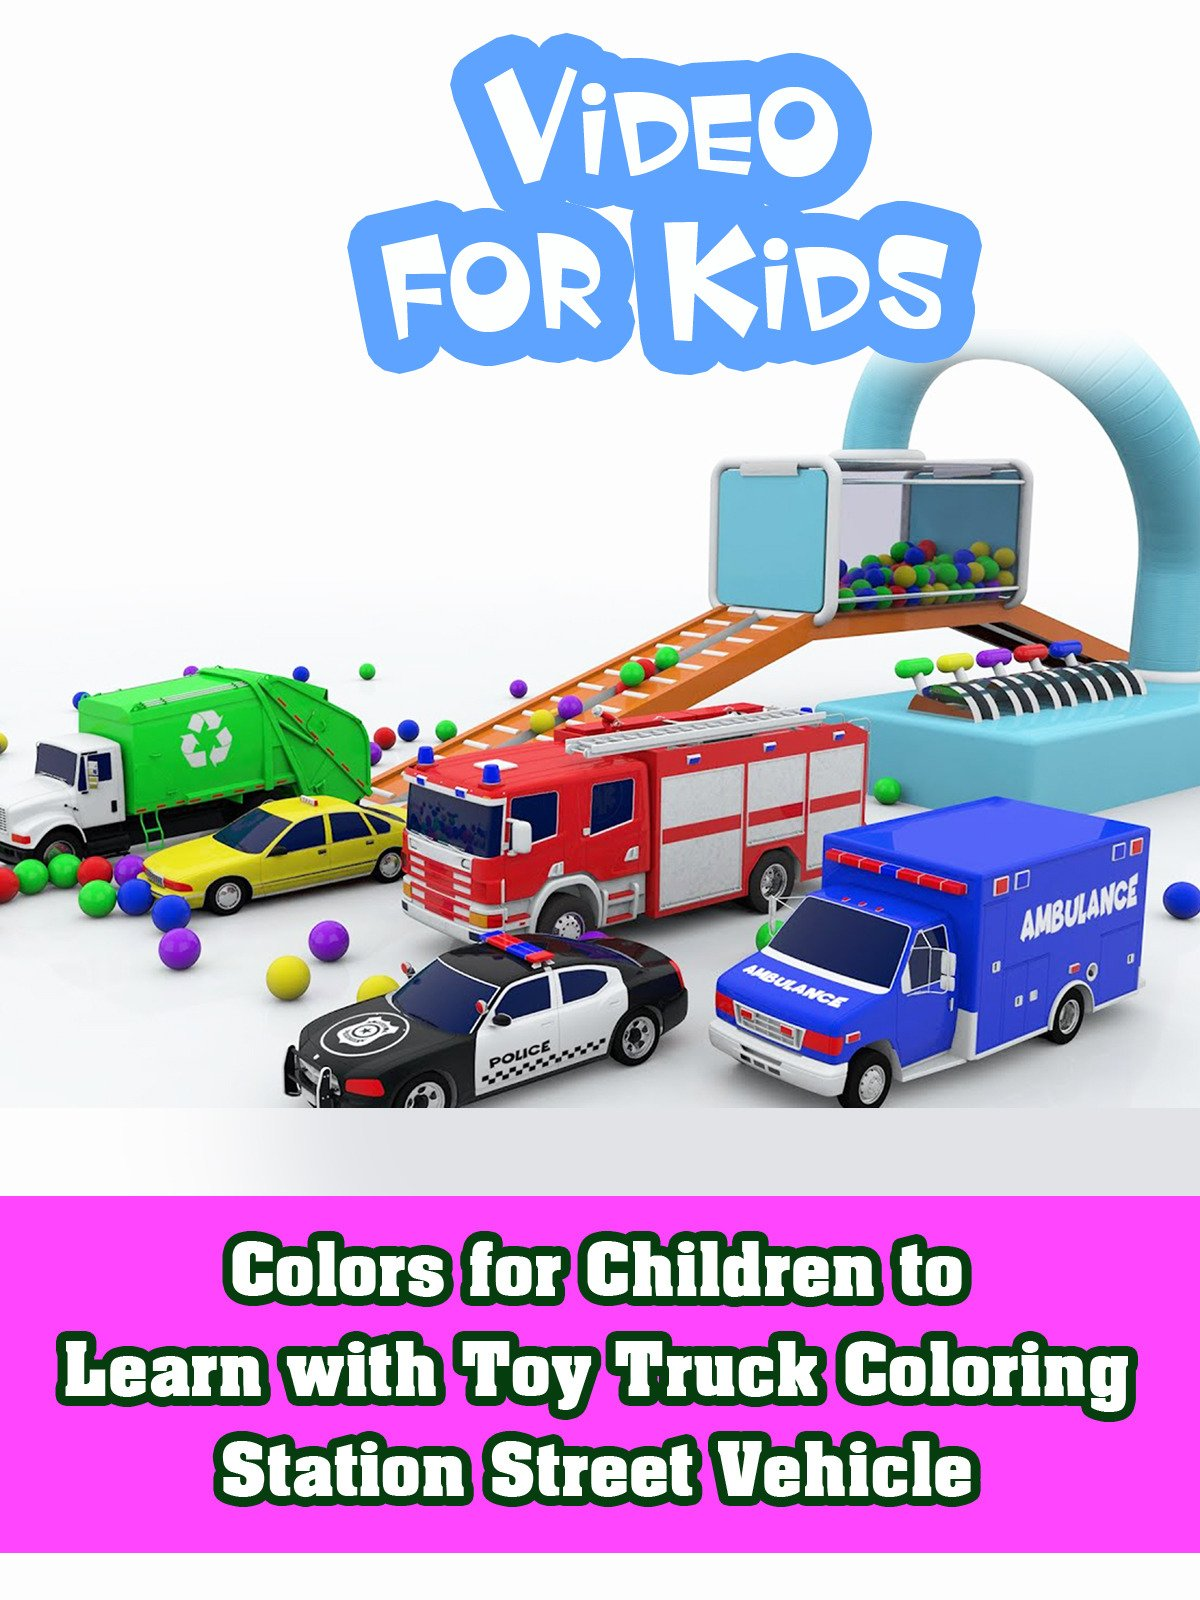 Colors for Children to Learn with Toy Truck Coloring Station Street Vehicle on Amazon Prime Instant Video UK